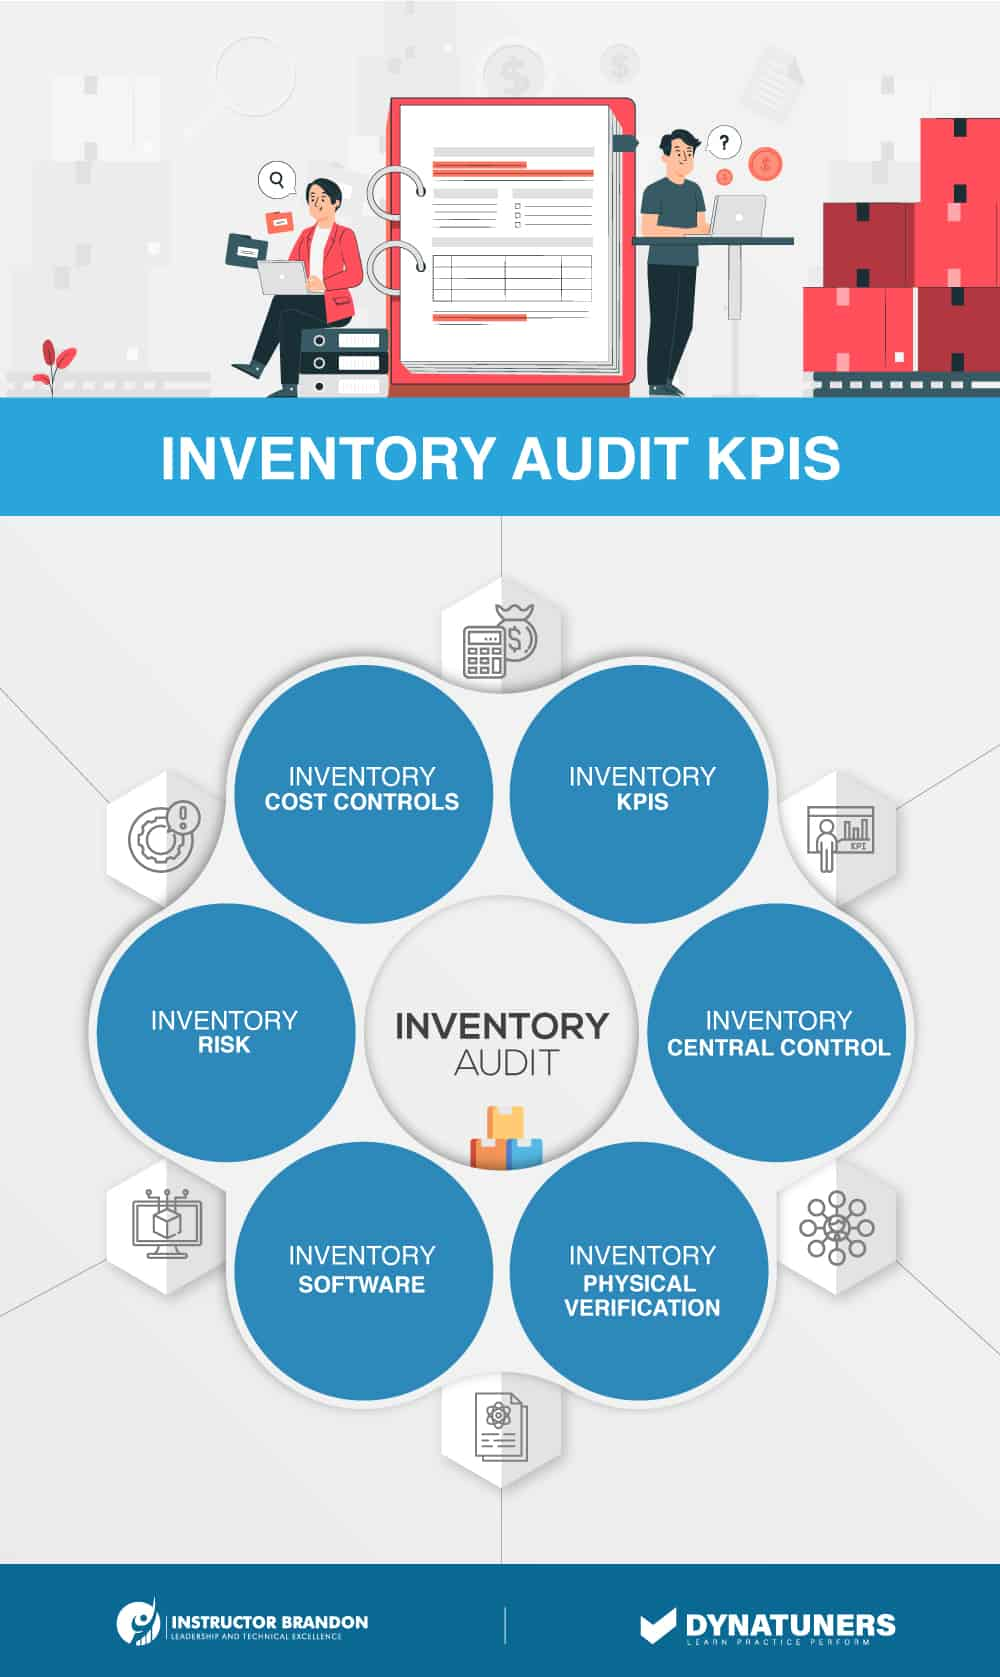 inventory audit kpis along with root cause analysis